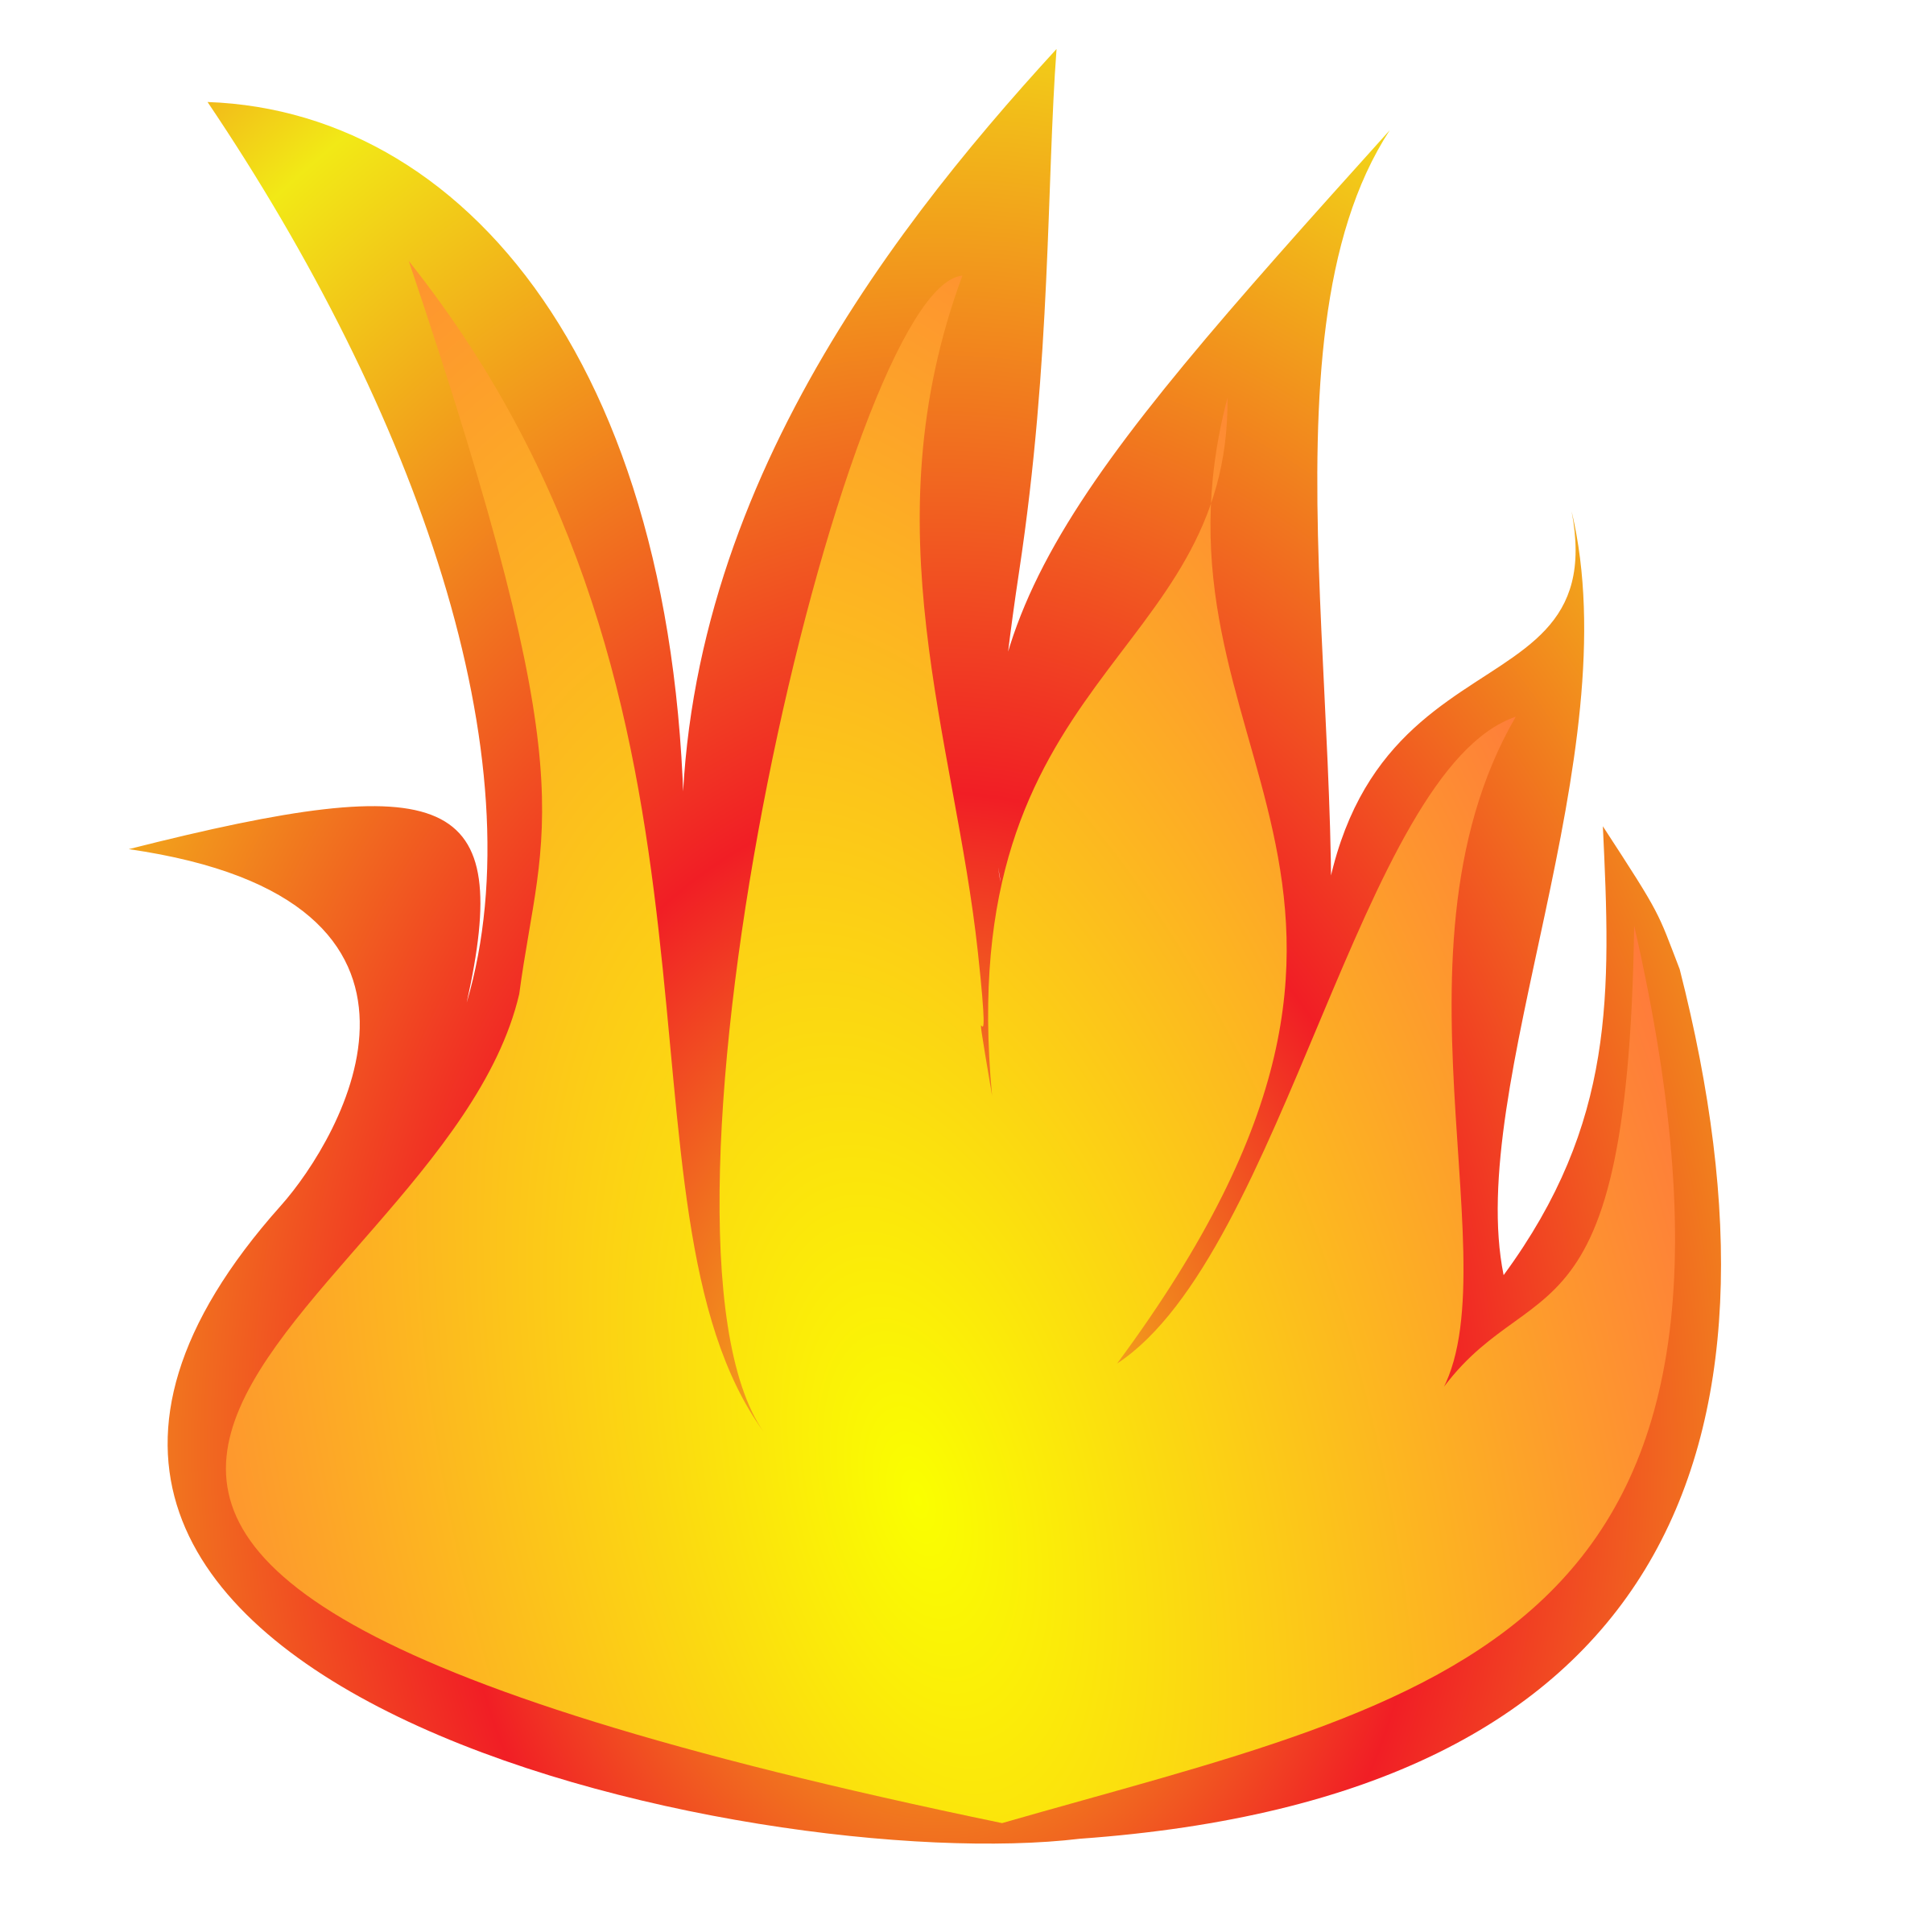 Clipart fire hand.  collection of transparent